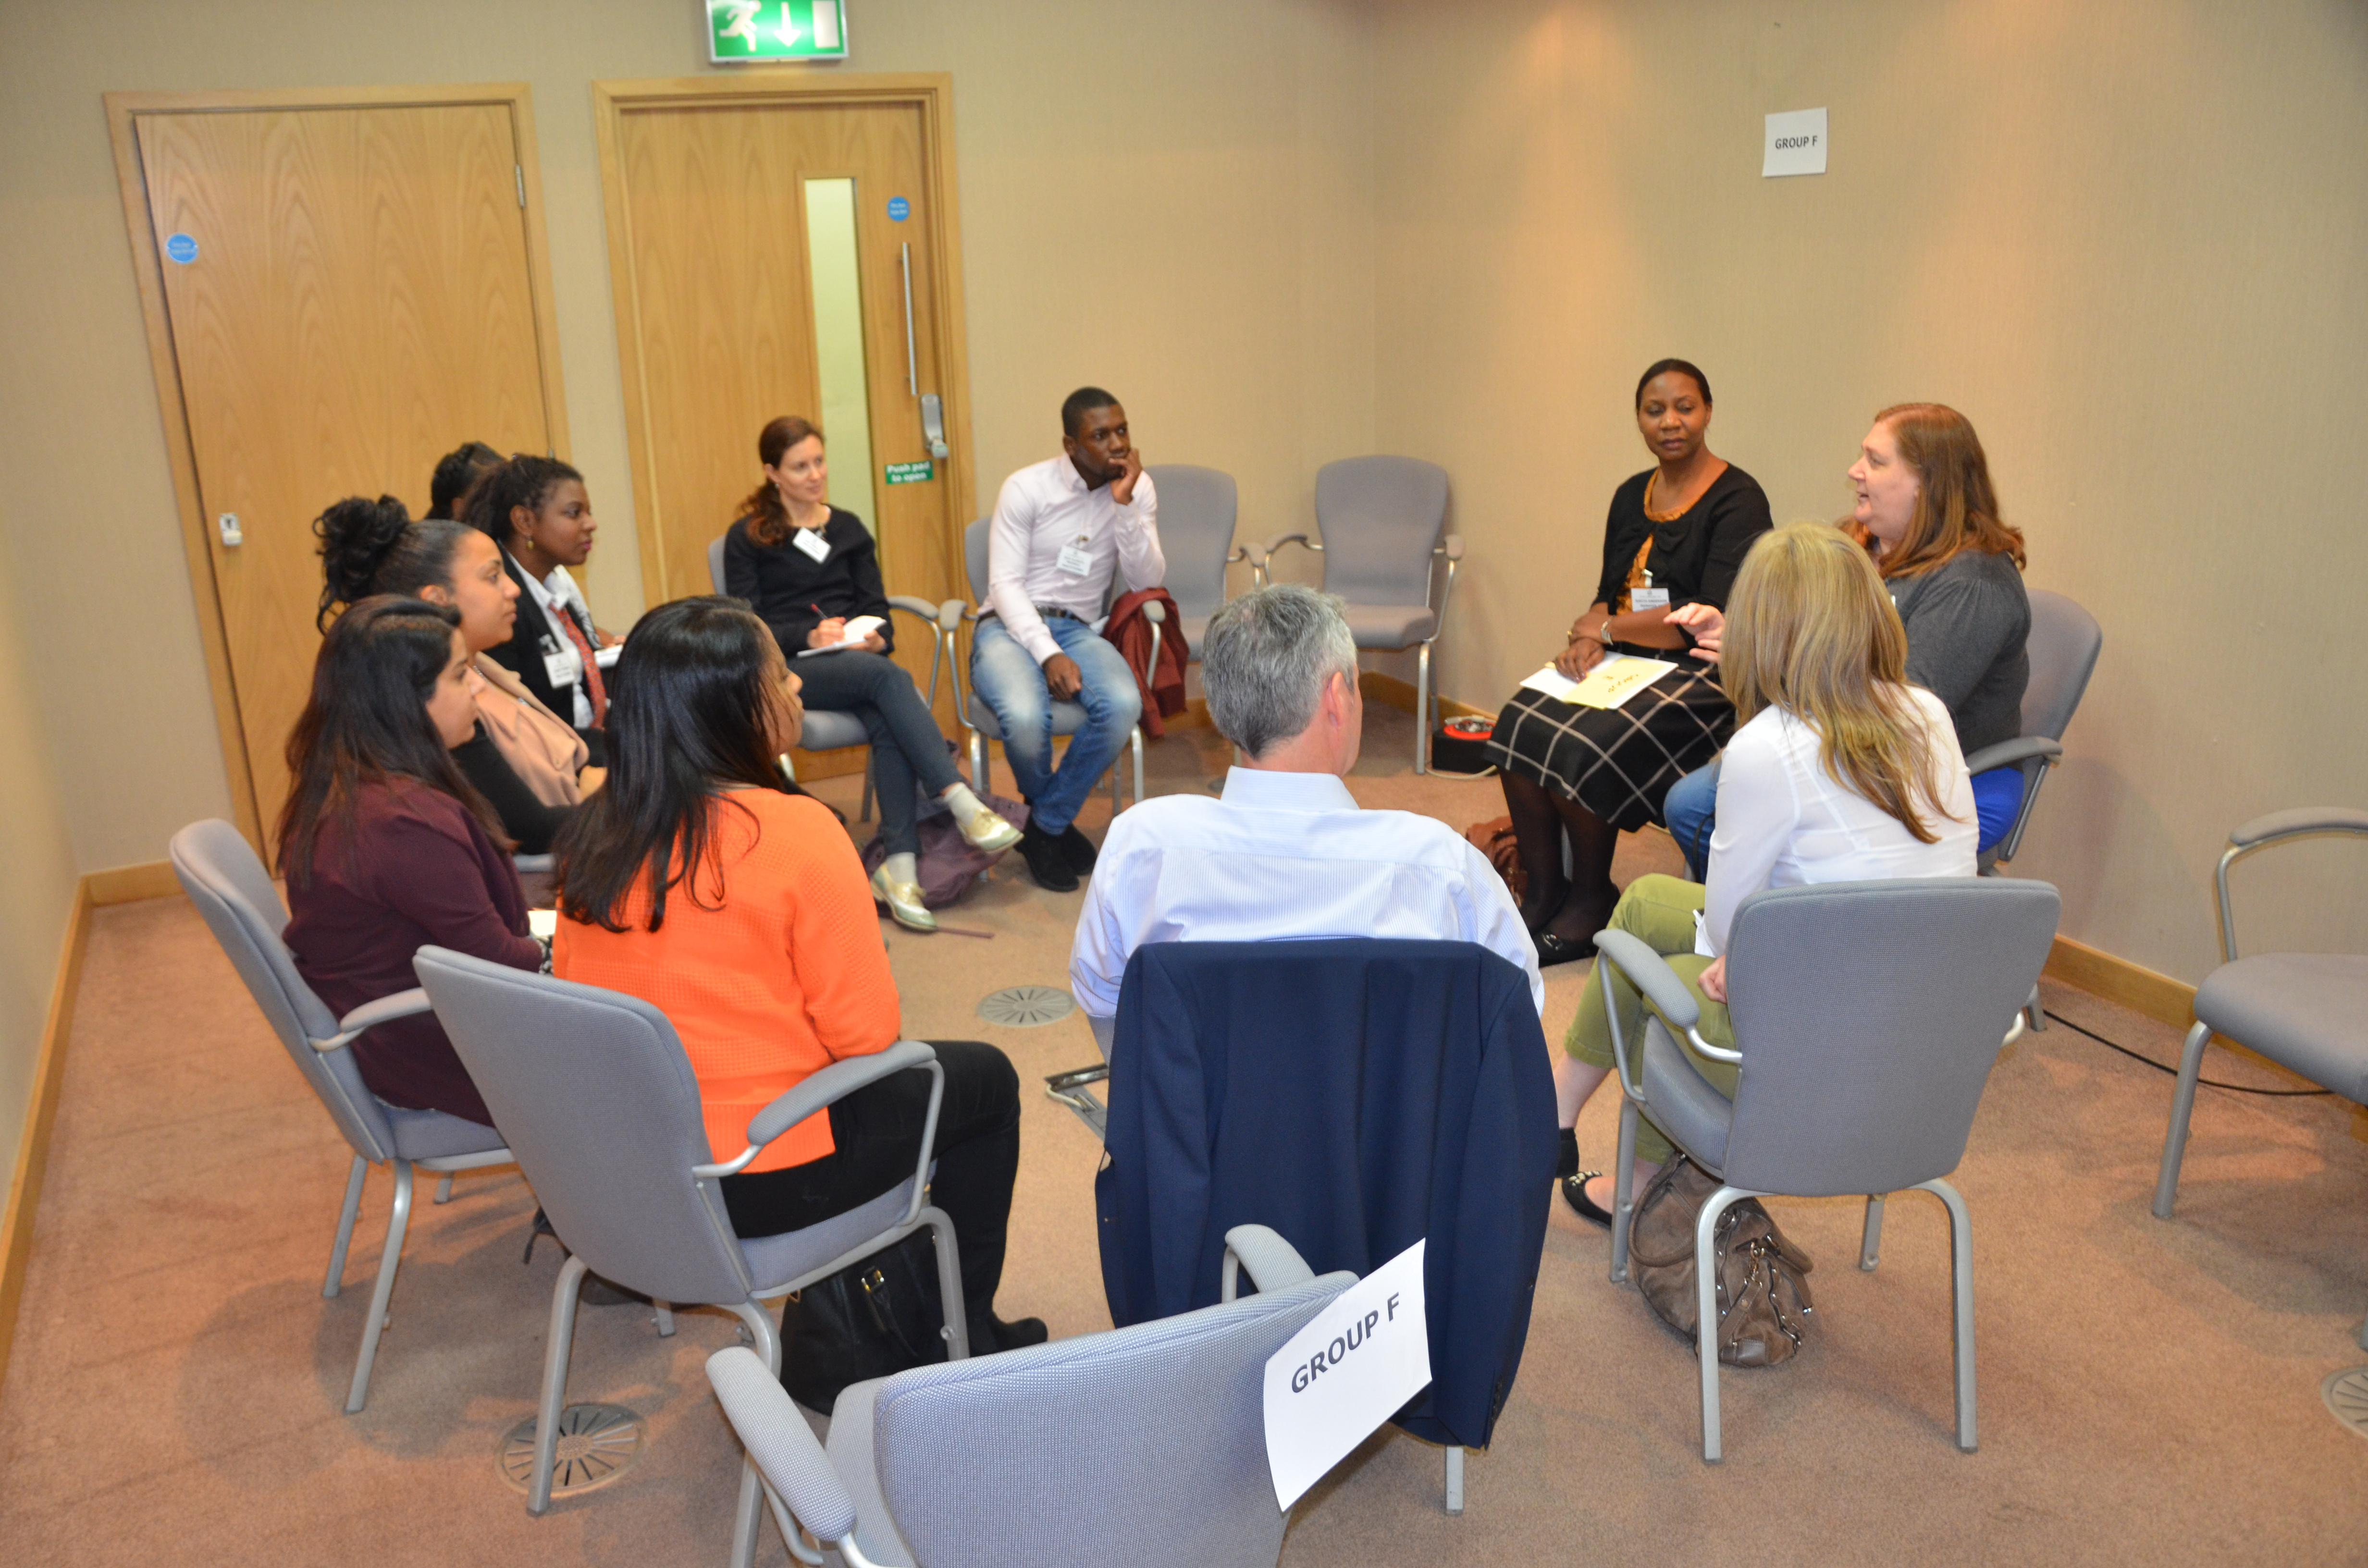 Another group of practitioners gather in a circle on chairs